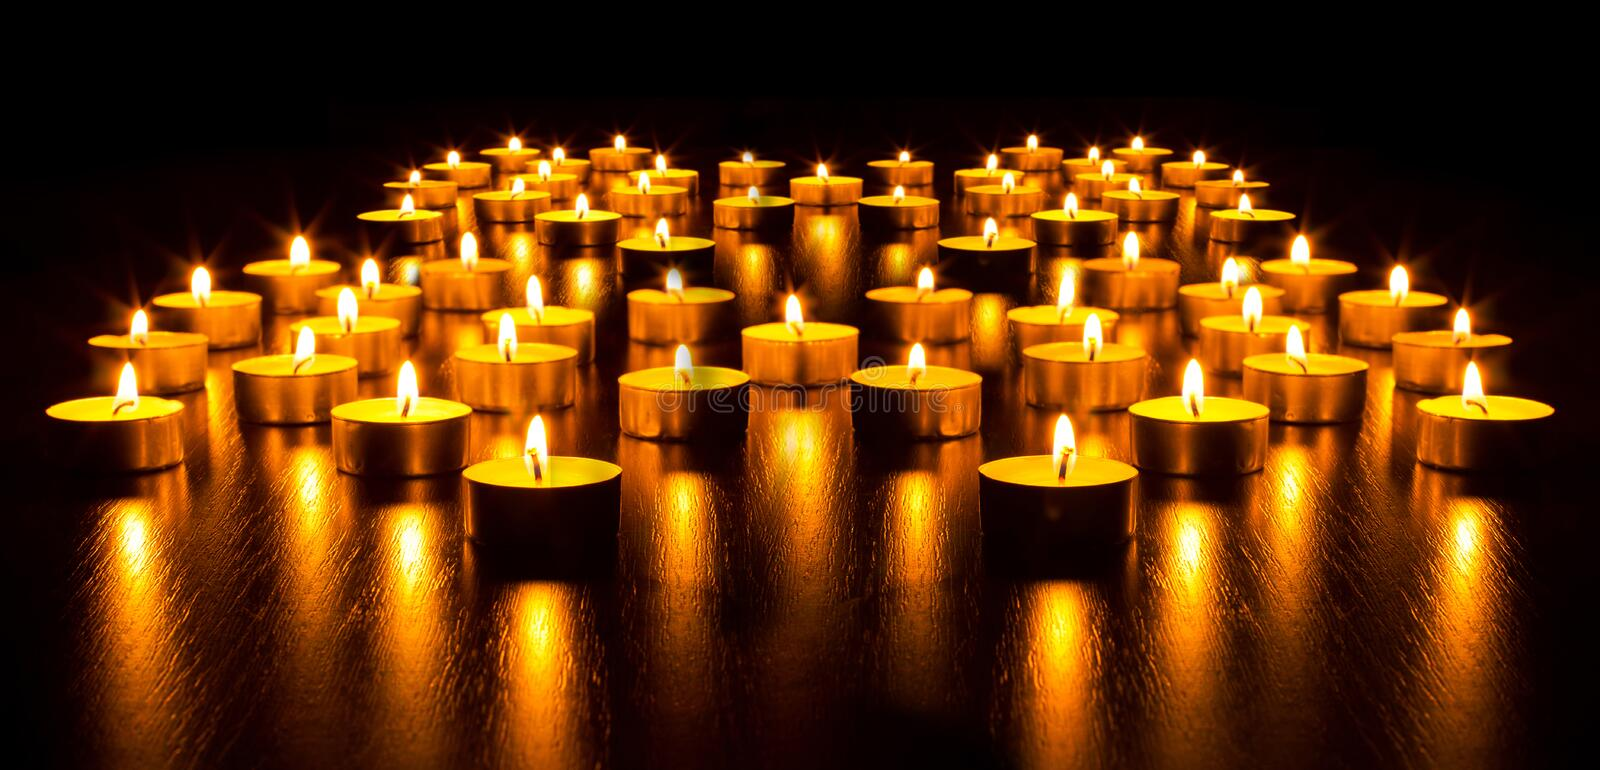 Panorama of the many burning candles stock images